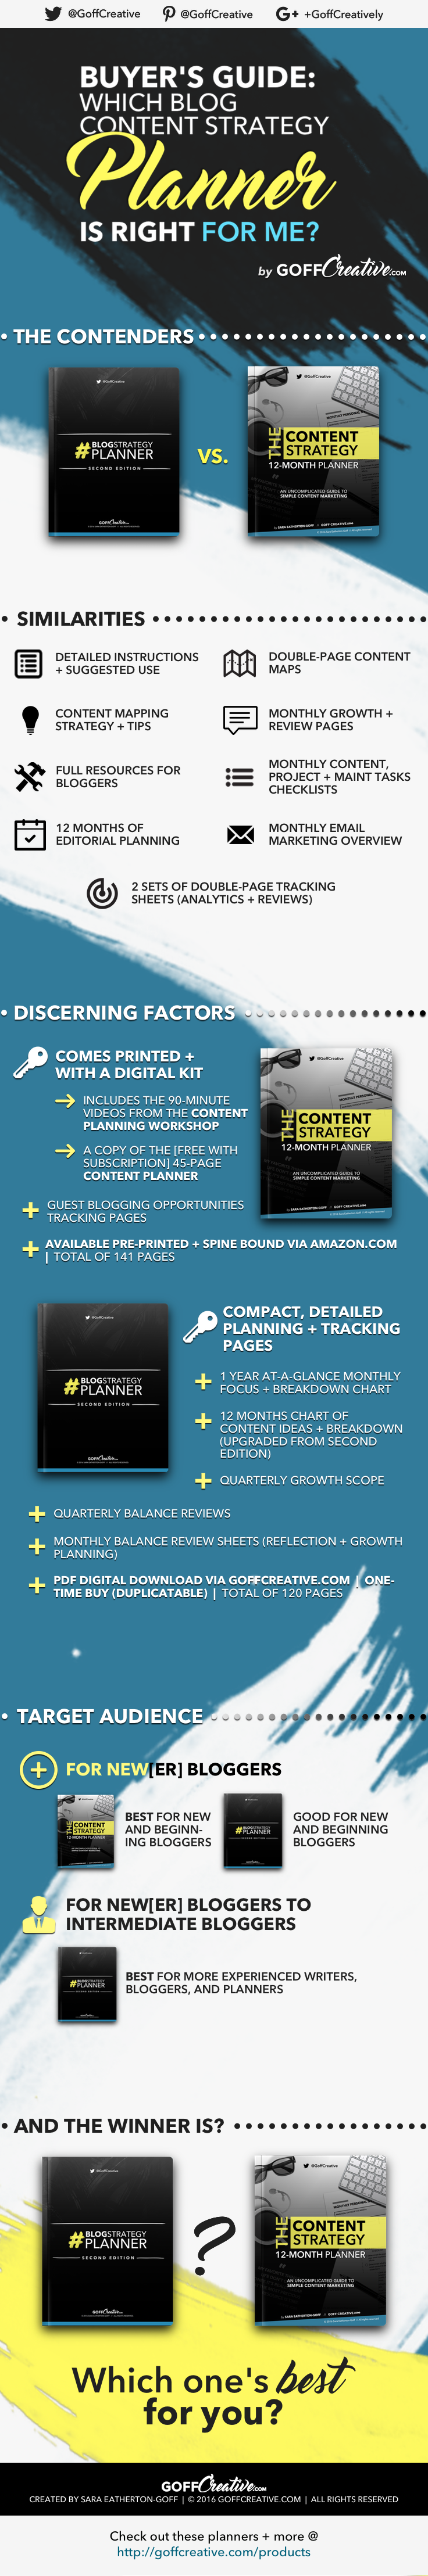 Which Blog Content Strategy Planner is right for you? The buyer's guide to selecting your best-fitting planner from GoffCreative.com » #Infographic style